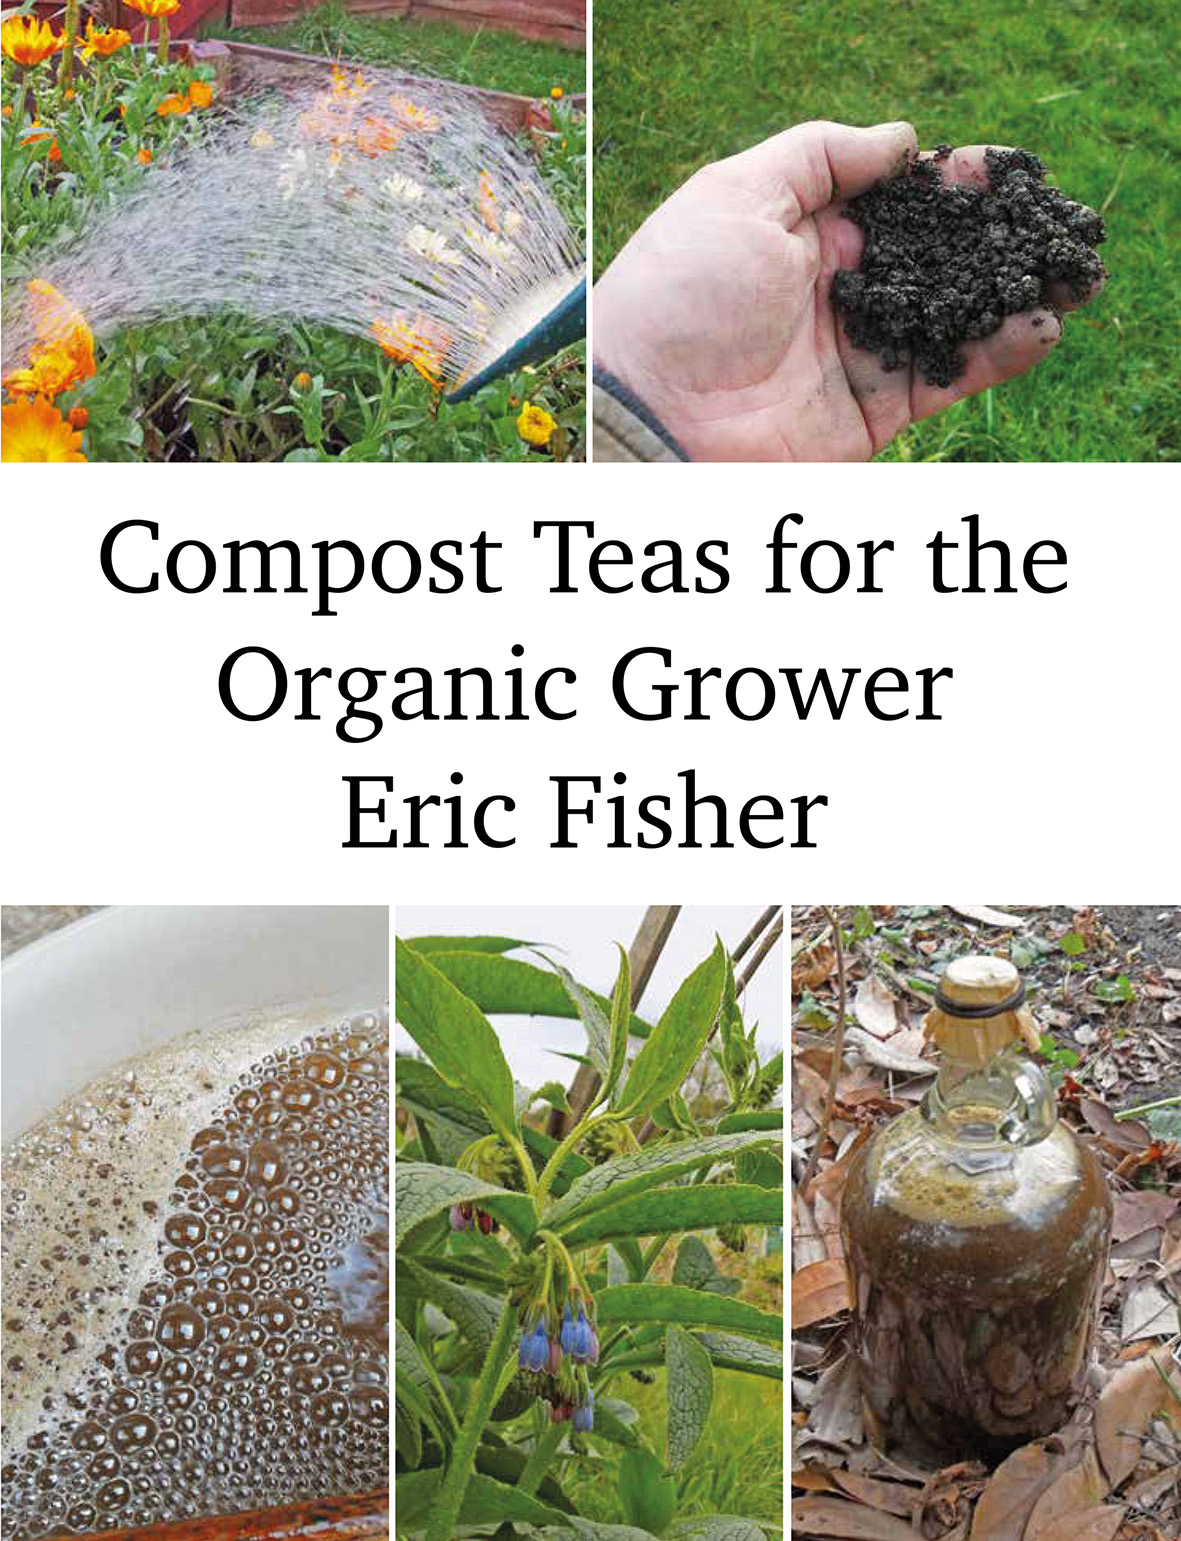 The Compost Teas for the Organic Grower cover